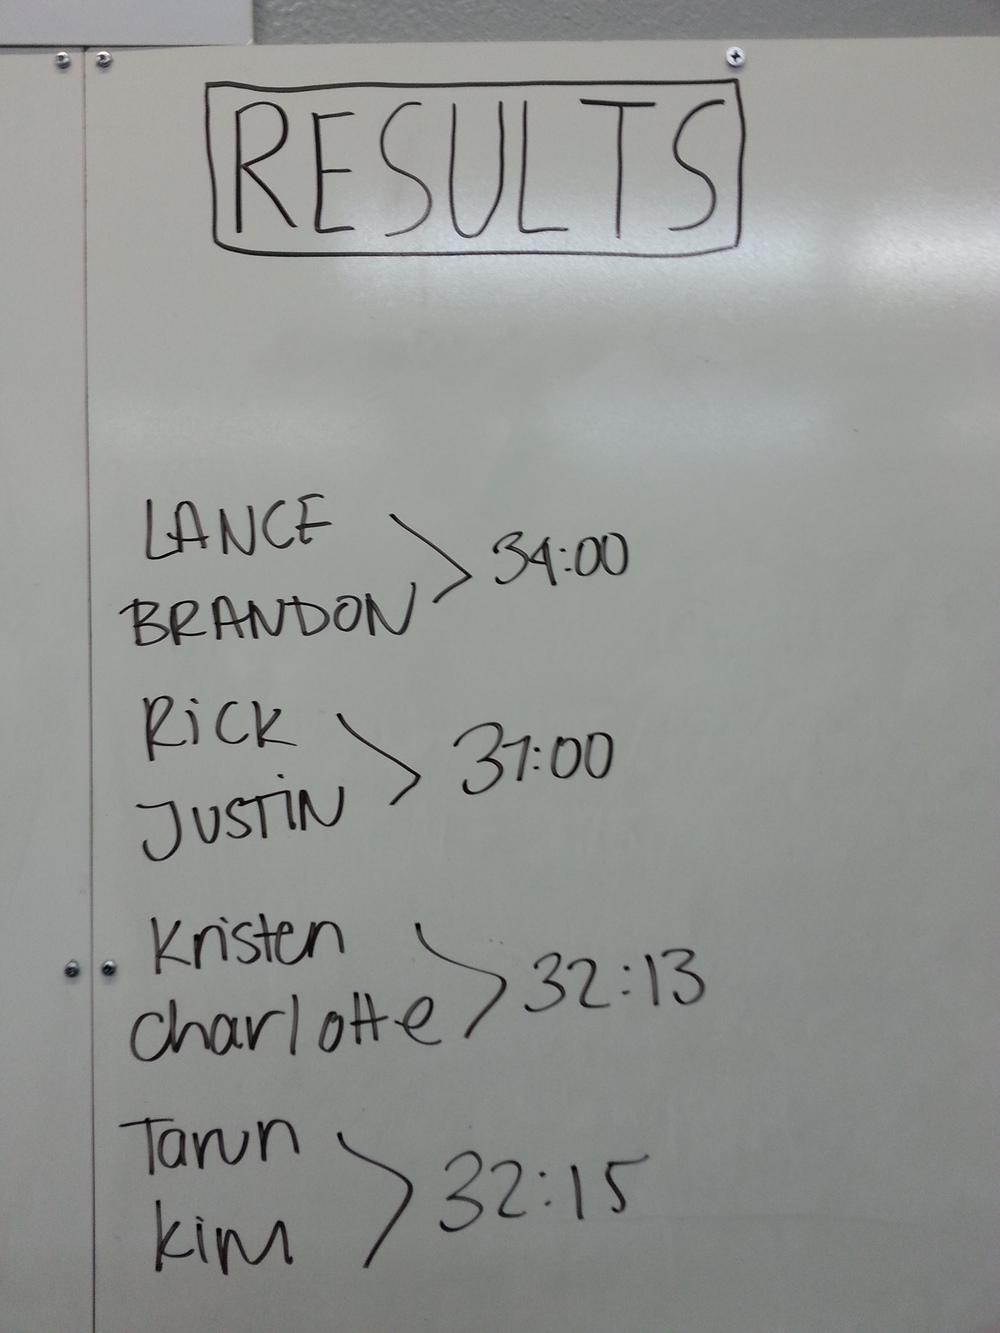 Times from Saturday's Partner WOD